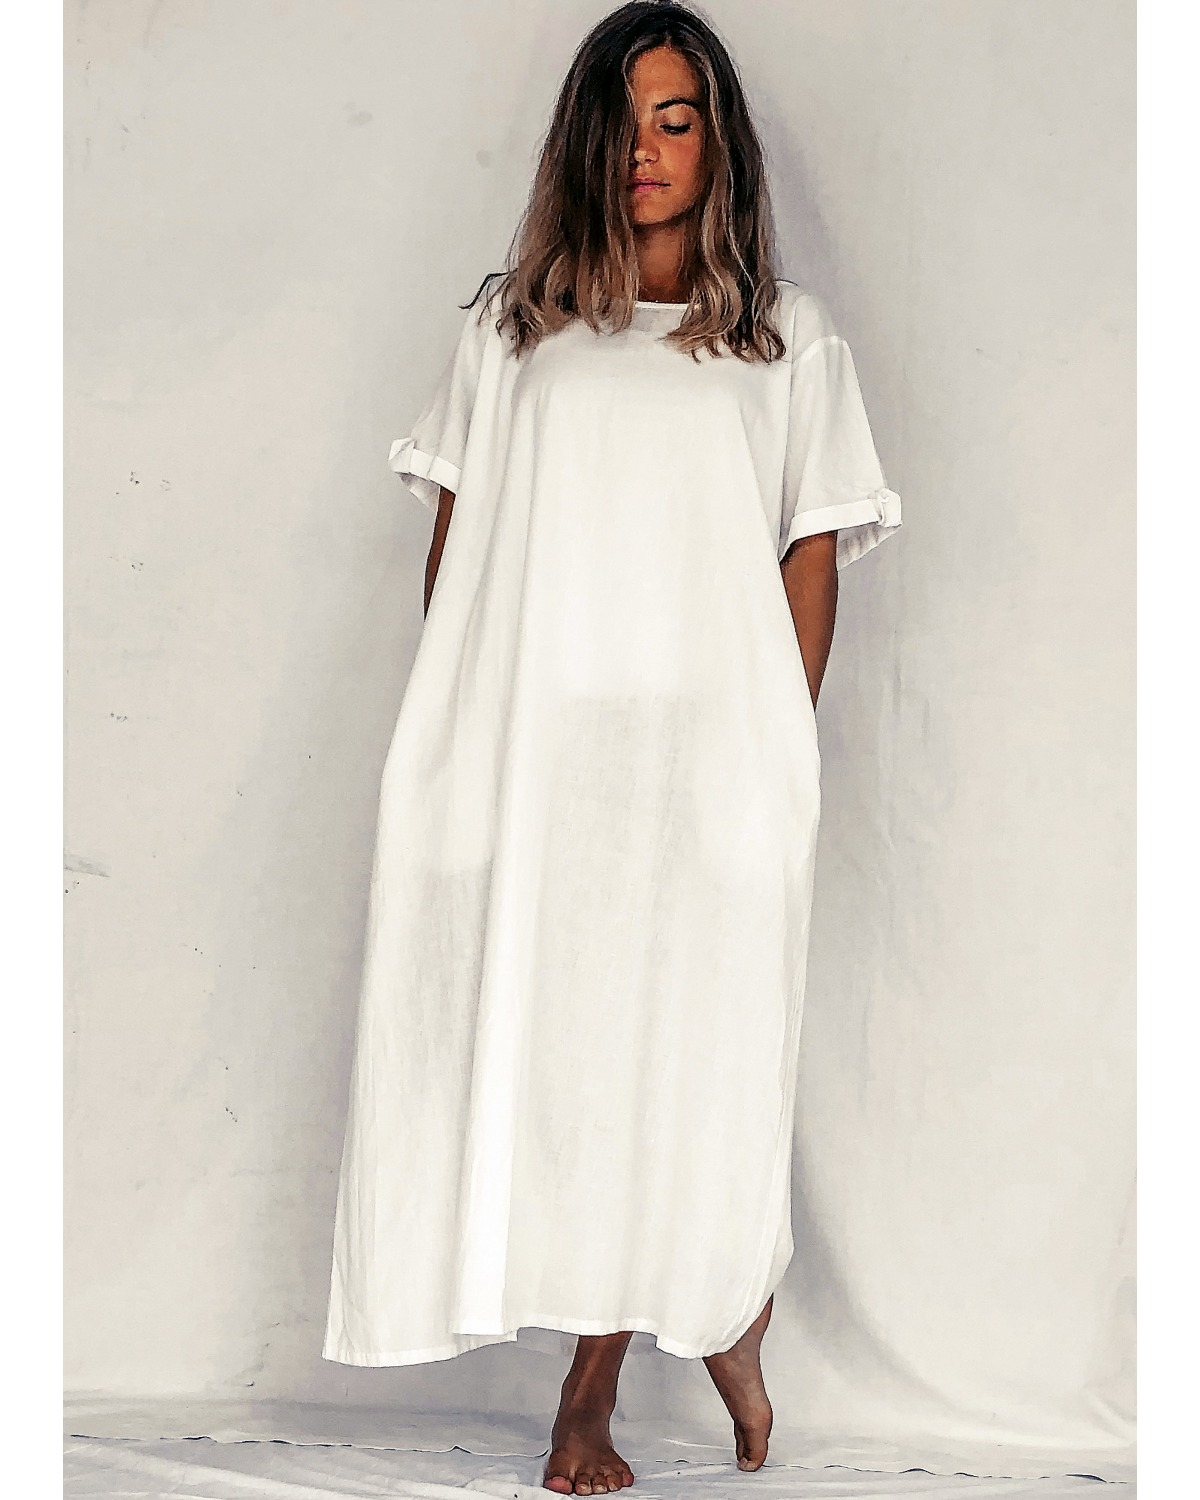 https://deanalan.us/3012-thickbox_default/the-loungers-dress.jpg